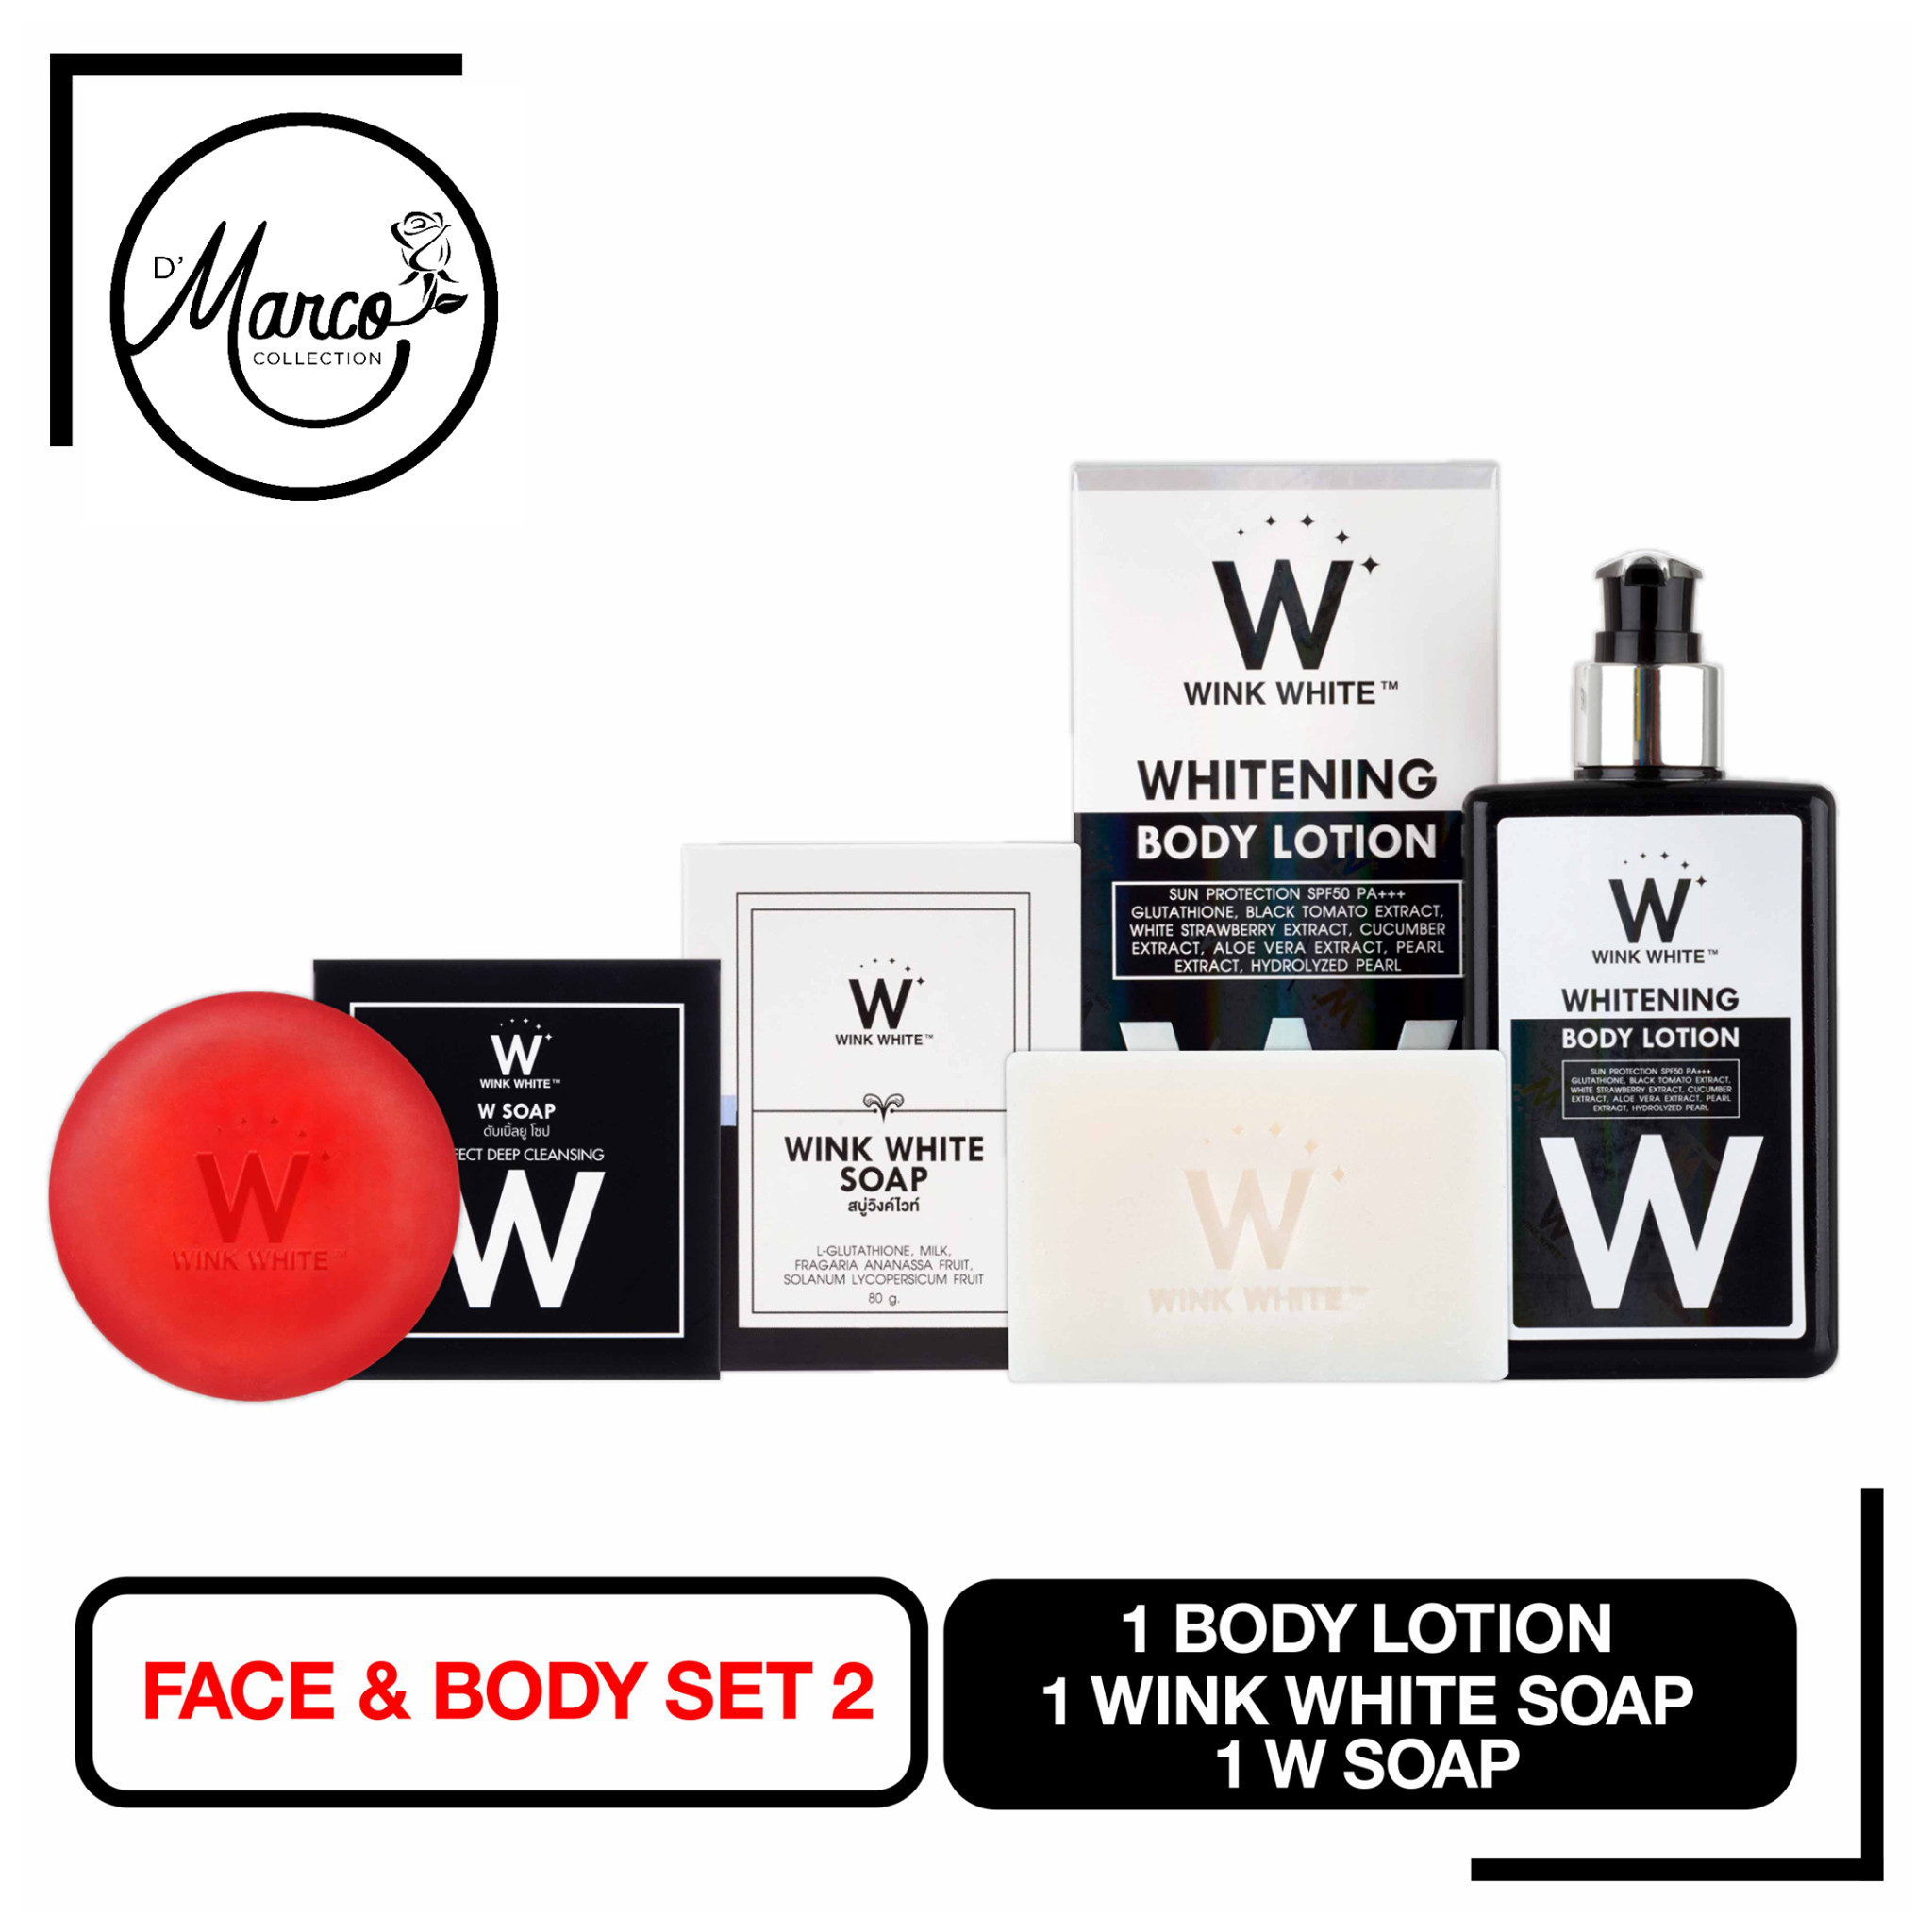 Set 2, 1 Wink White Soap, 1 W Soap, 1 Body Lotion